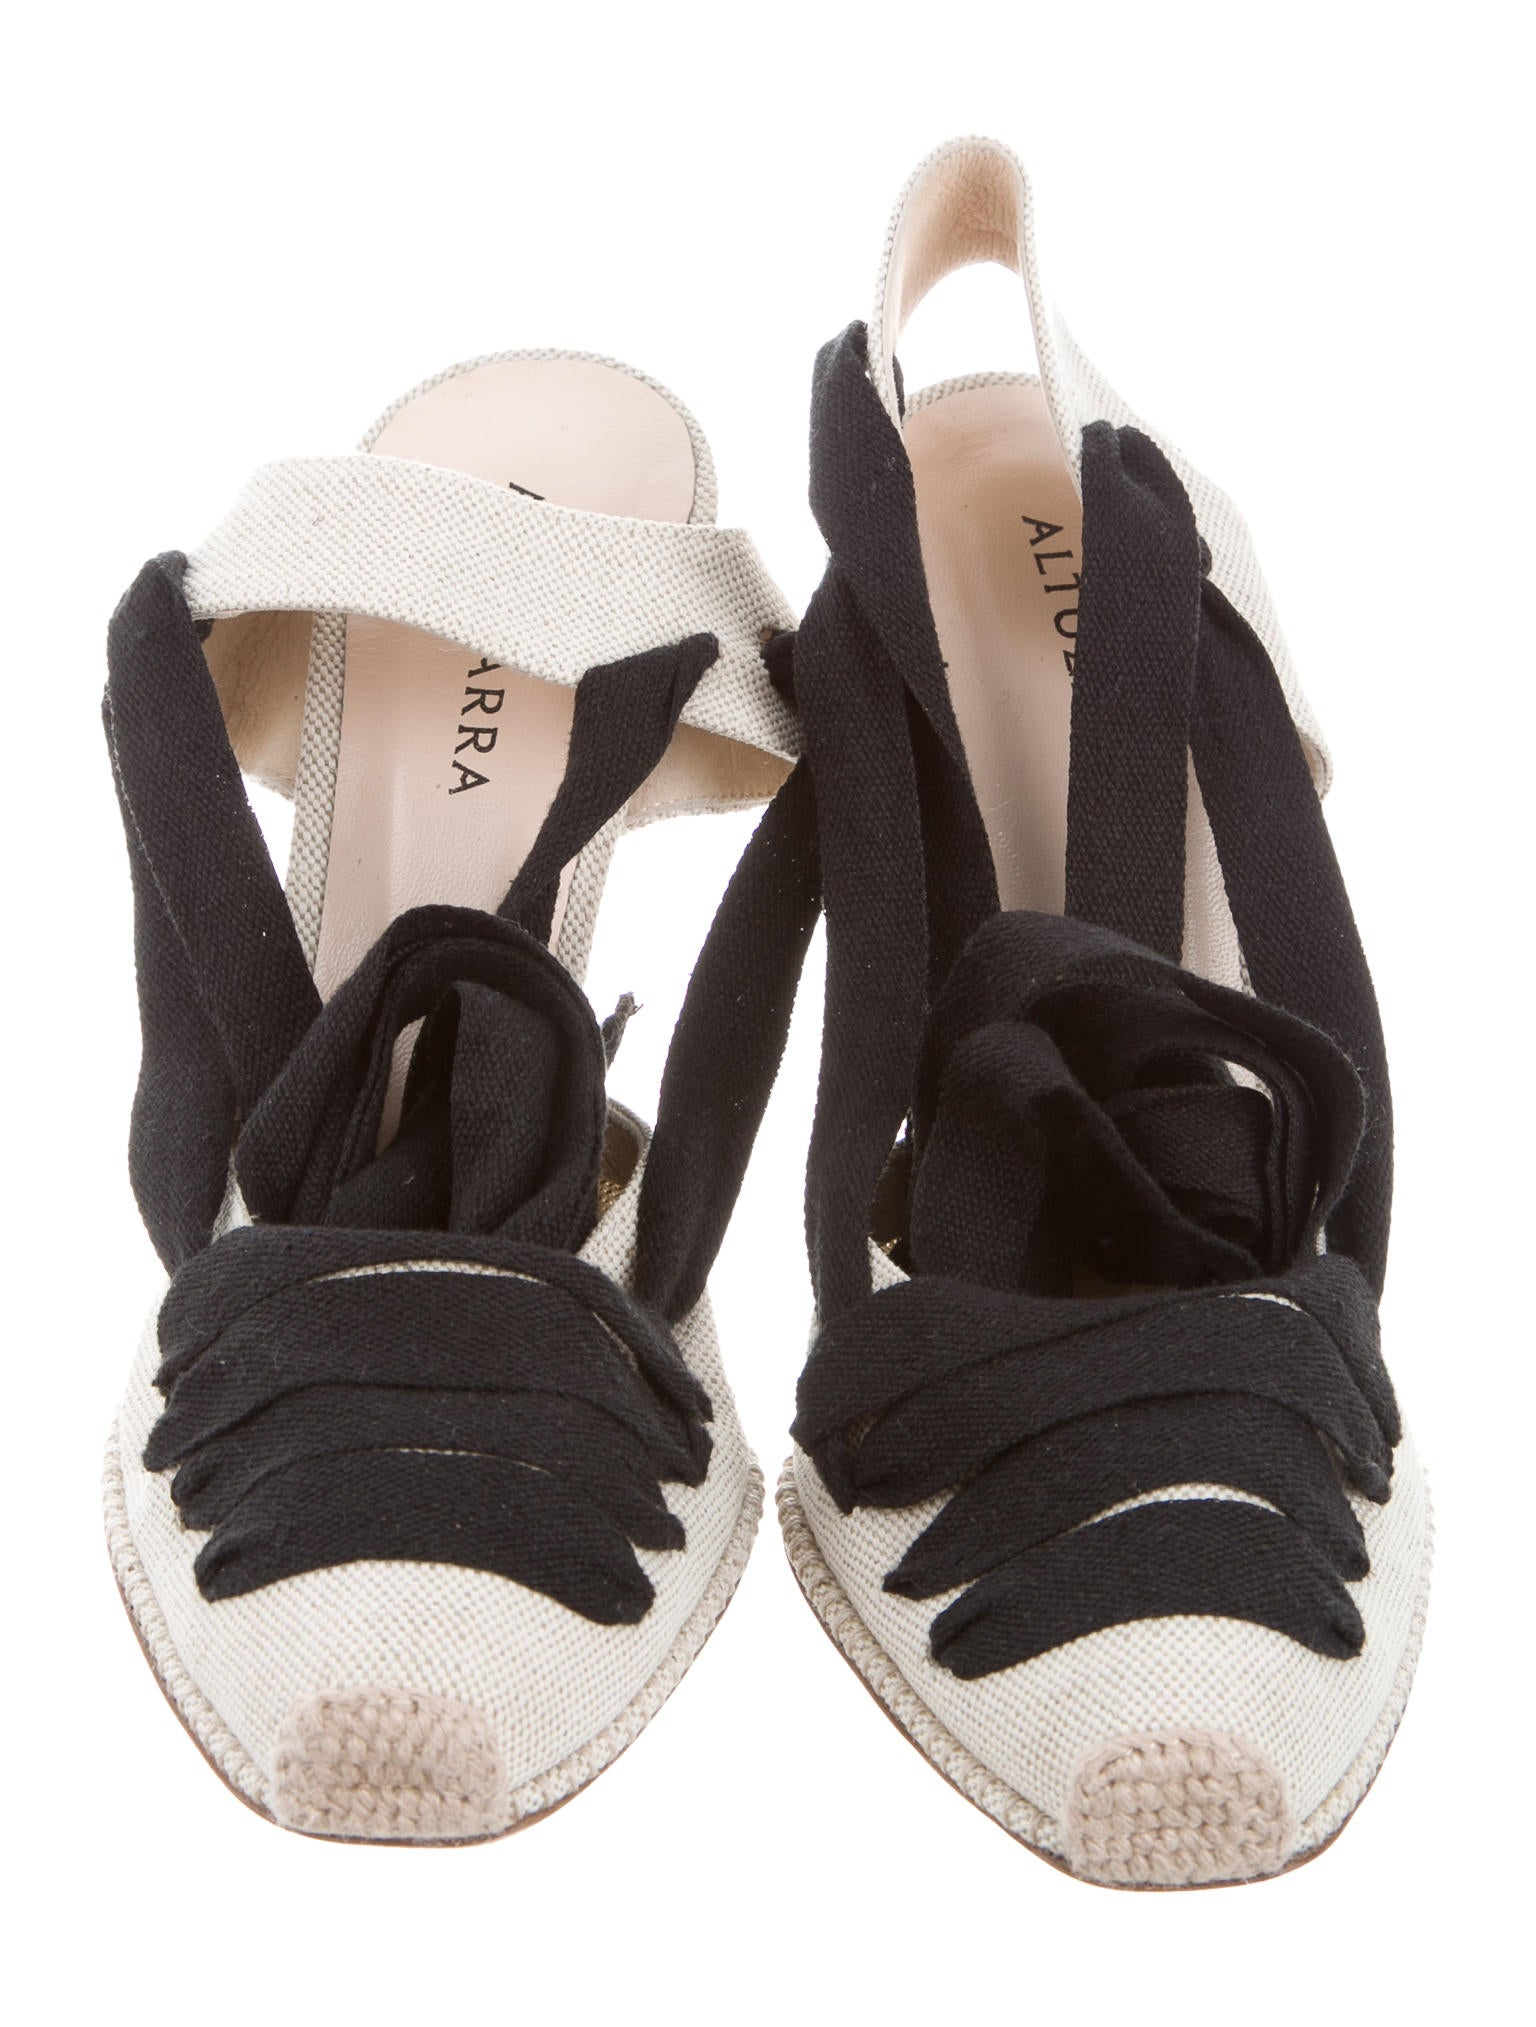 Rated 5 out of 5 by Kenjohn from Great pumps These are great for casual wear the quality and fir is as you would expect from cotton traders a good buy Date published: Canvas Lace-Up Pump Reviews - page 2.